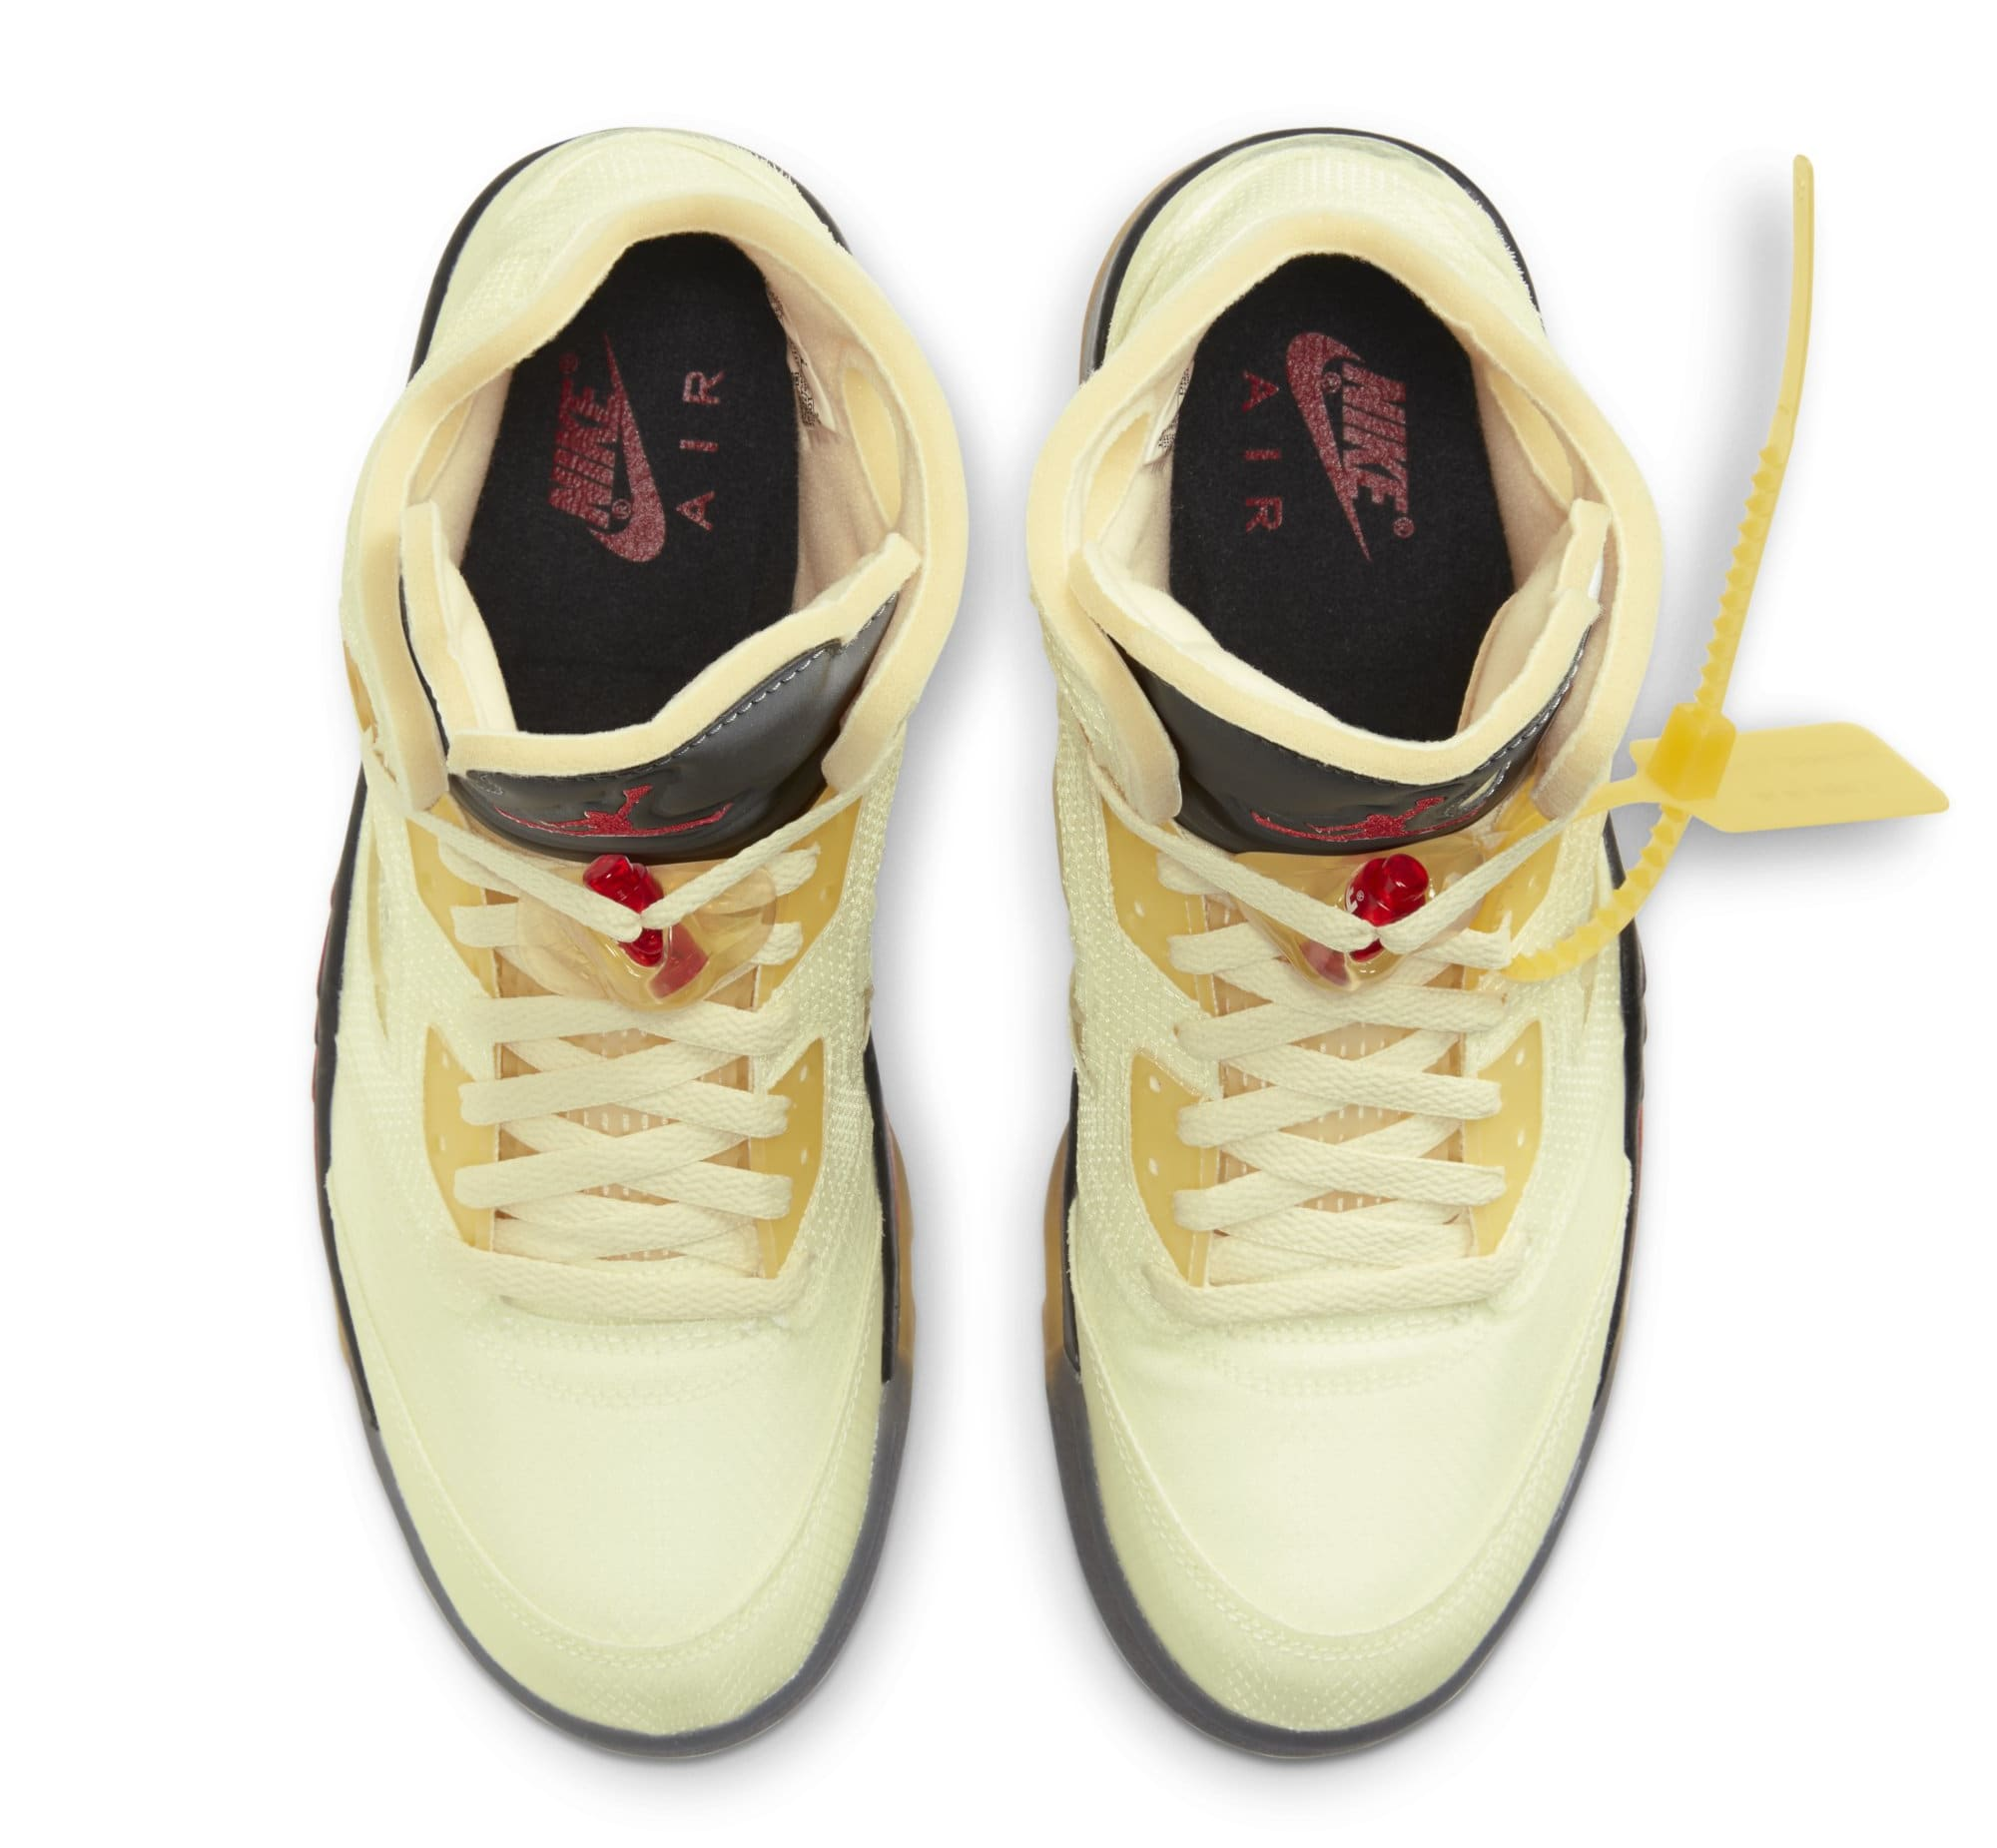 Off-White x Air Jordan 5 'Sail/Fire Red/Muslin/Black' (Top)